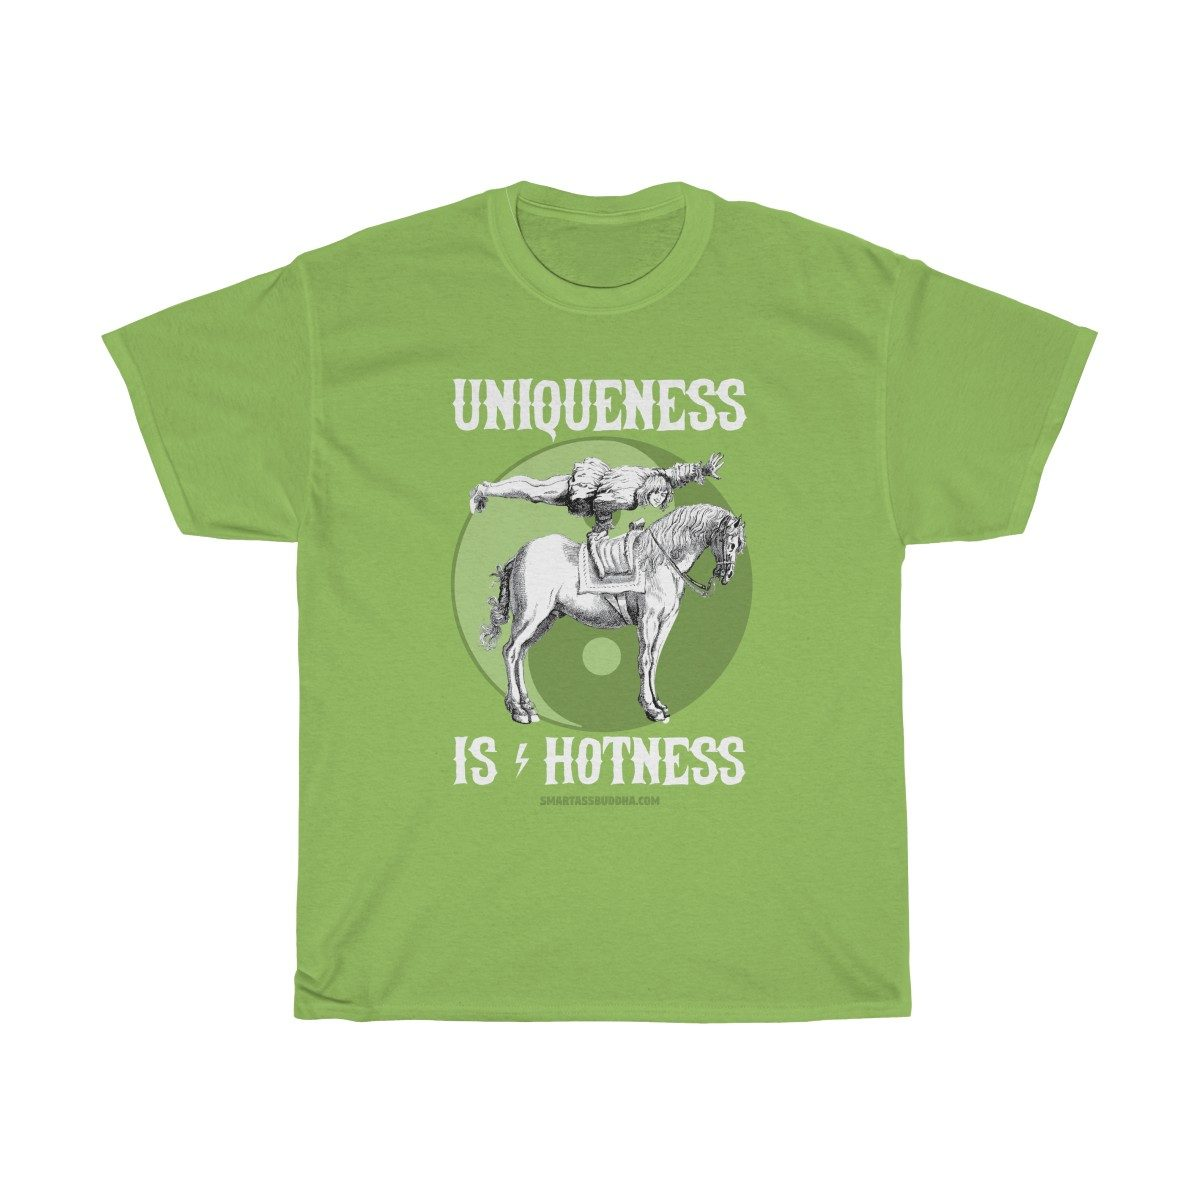 Positive-tshirt-gifts-for-her-women-men-dad-mom-him-funny-sayings-Buddha-tshirt-quotes-spiritual-uniqueness-hotness-green